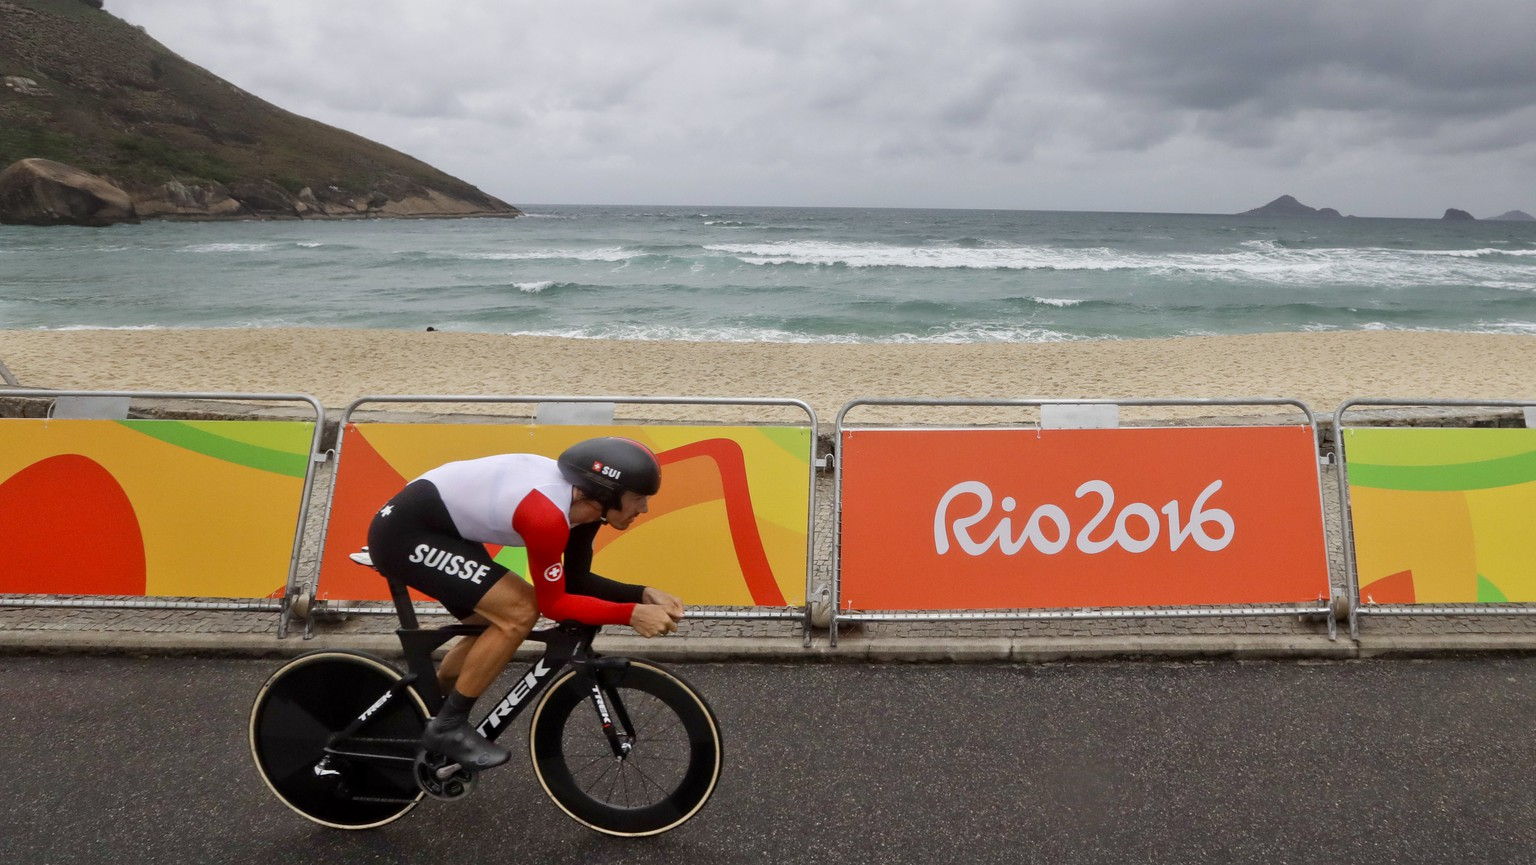 Cyclist Fabian Cancellara of Switzerland rides along Pontal beach during the men's individual time trial event at the 2016 Summer Olympics in Pontal beach, Rio de Janeiro, Brazil, Wednesday, Aug. 10, 2016. (AP Photo/Victor R. Caivano)